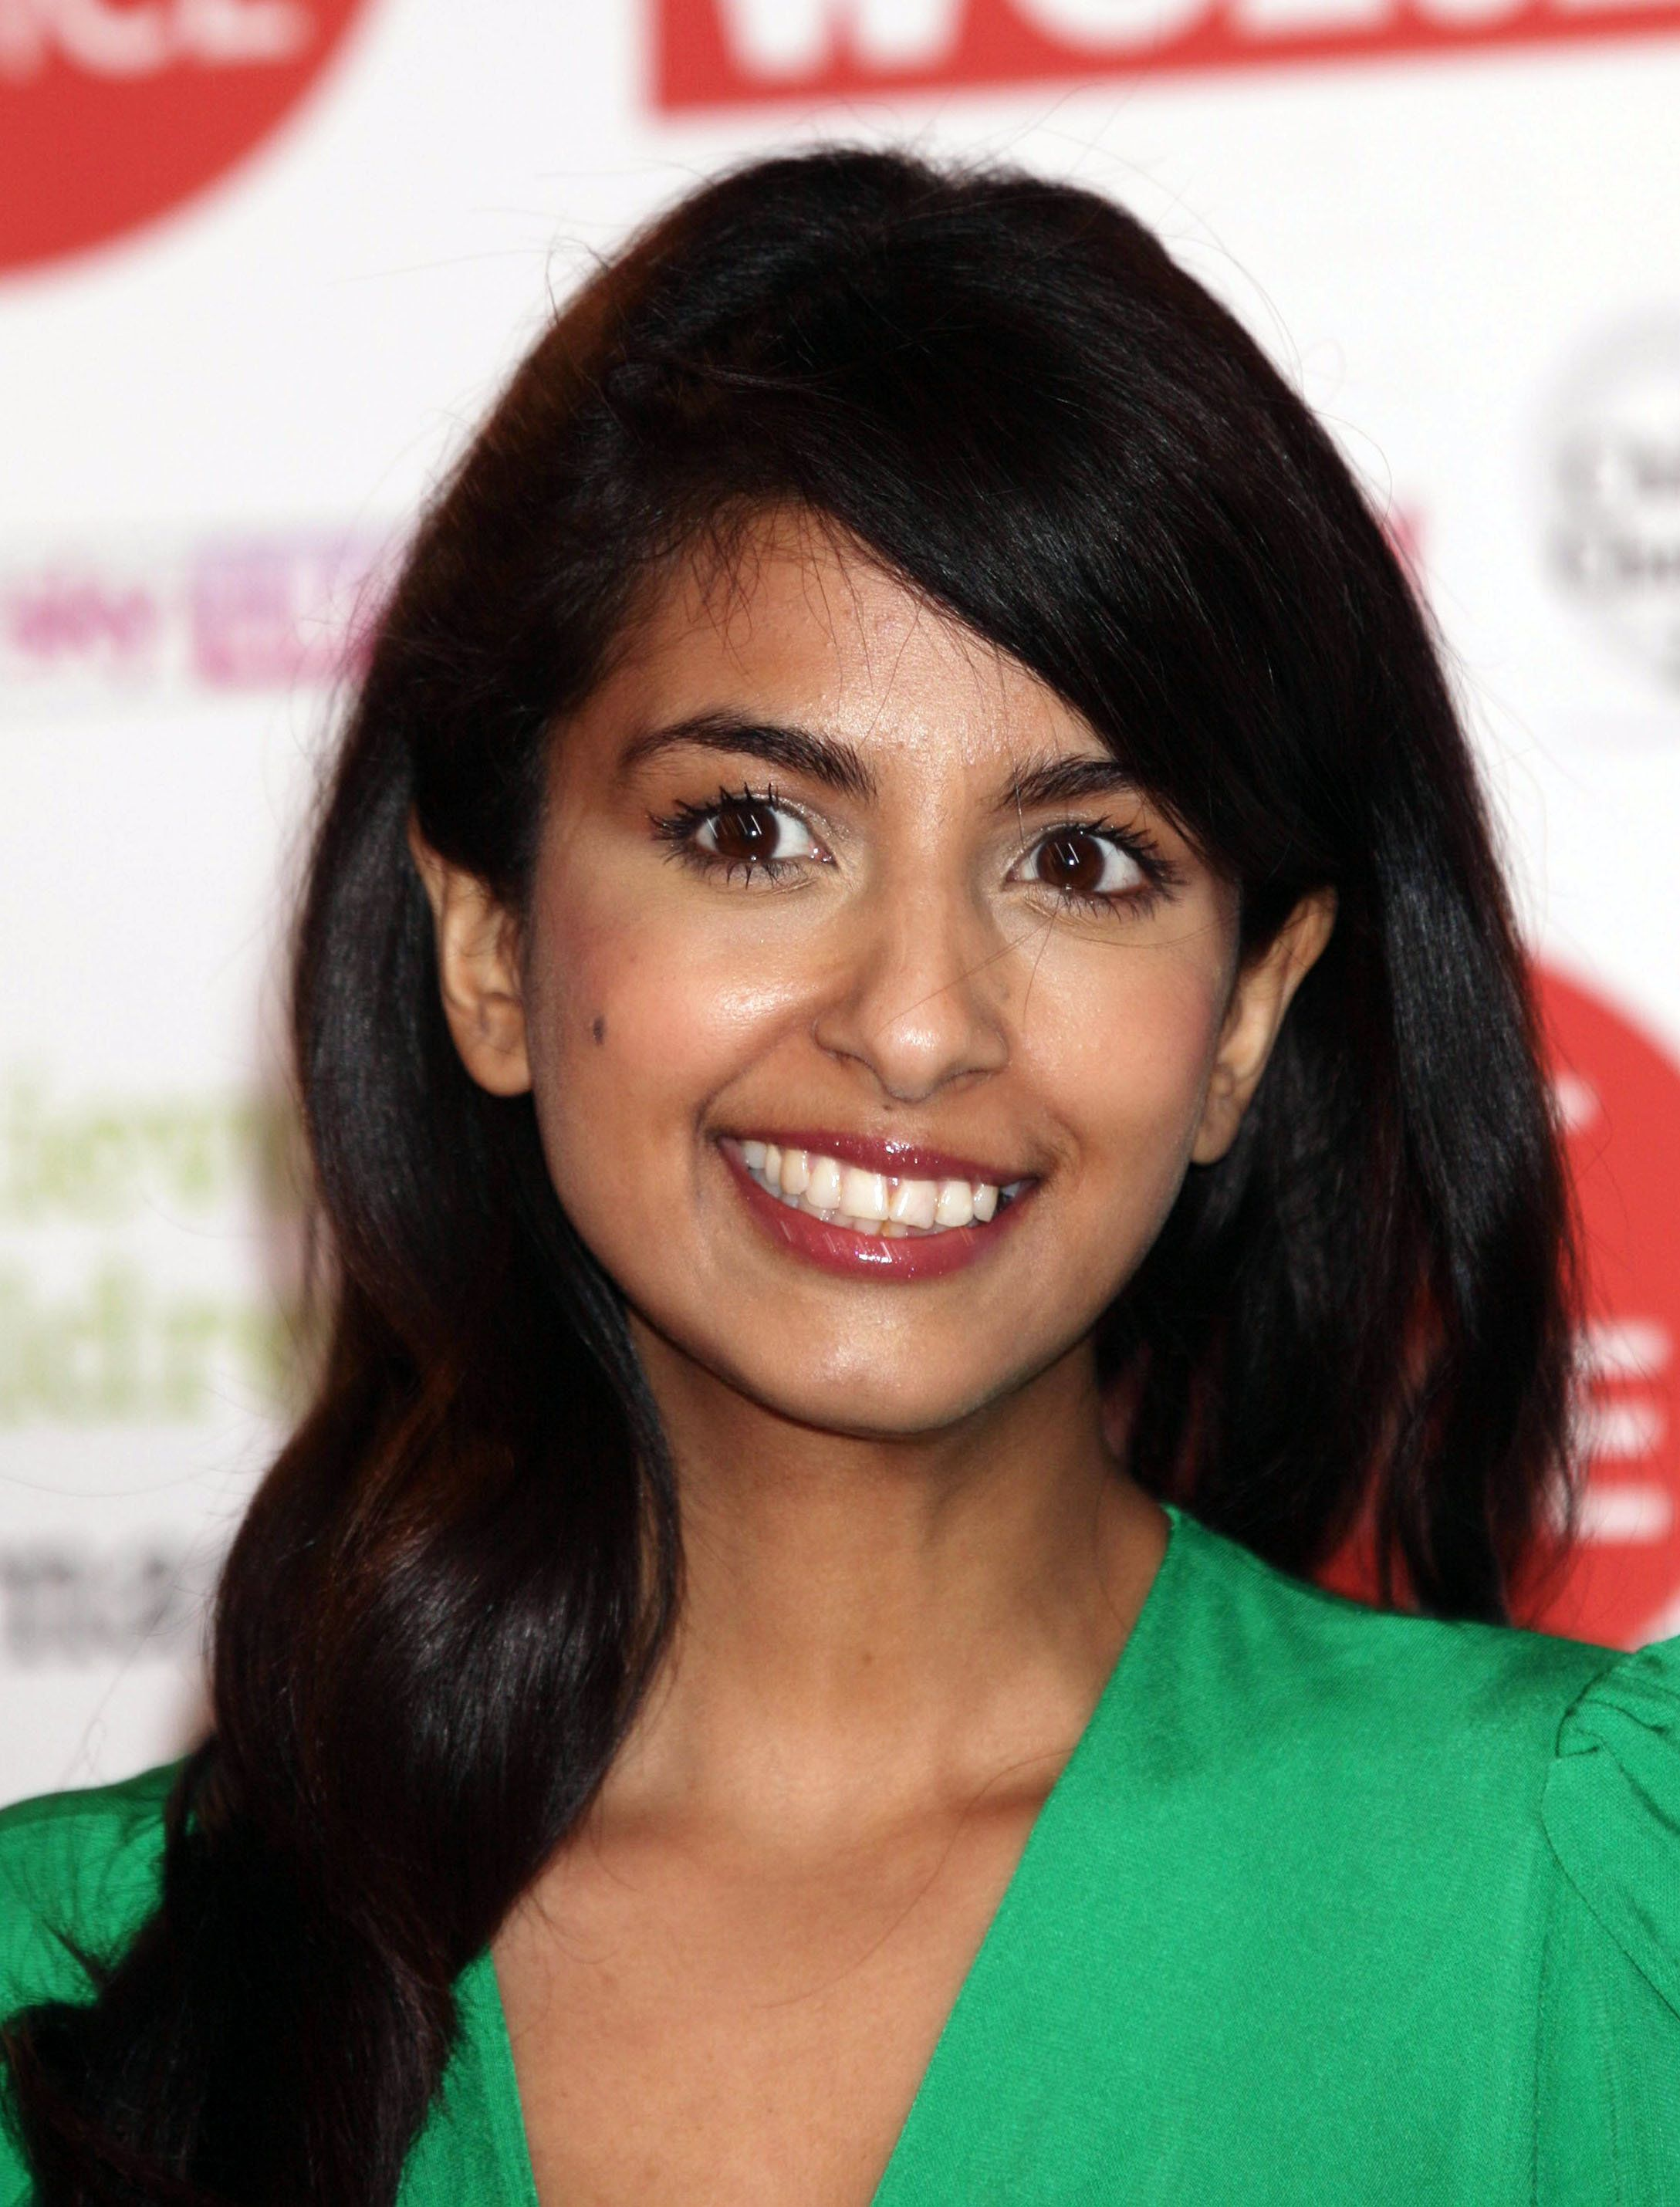 Konnie Huq says now that the BBC's wish to include ethnic minorities on screen helped give her a leg